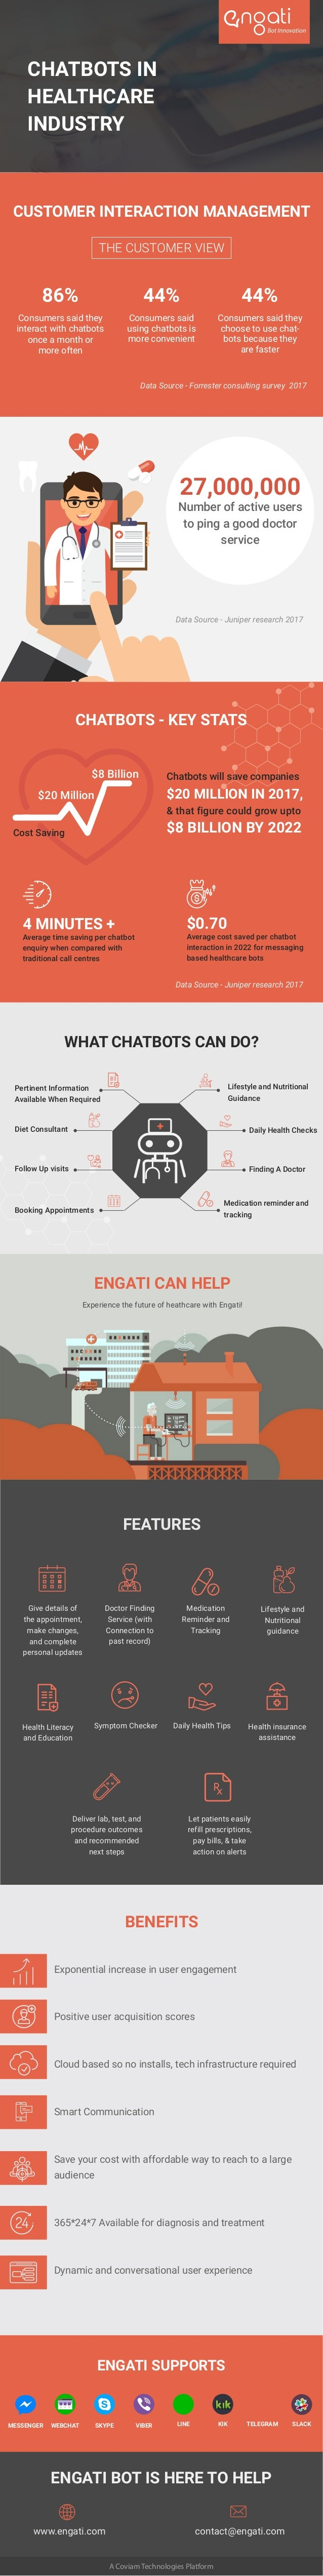 CHATBOTS IN HEALTHCARE INDUSTRY CUSTOMER INTERACTION MANAGEMENT 86% Consumers said they interact with chatbots once a mont...